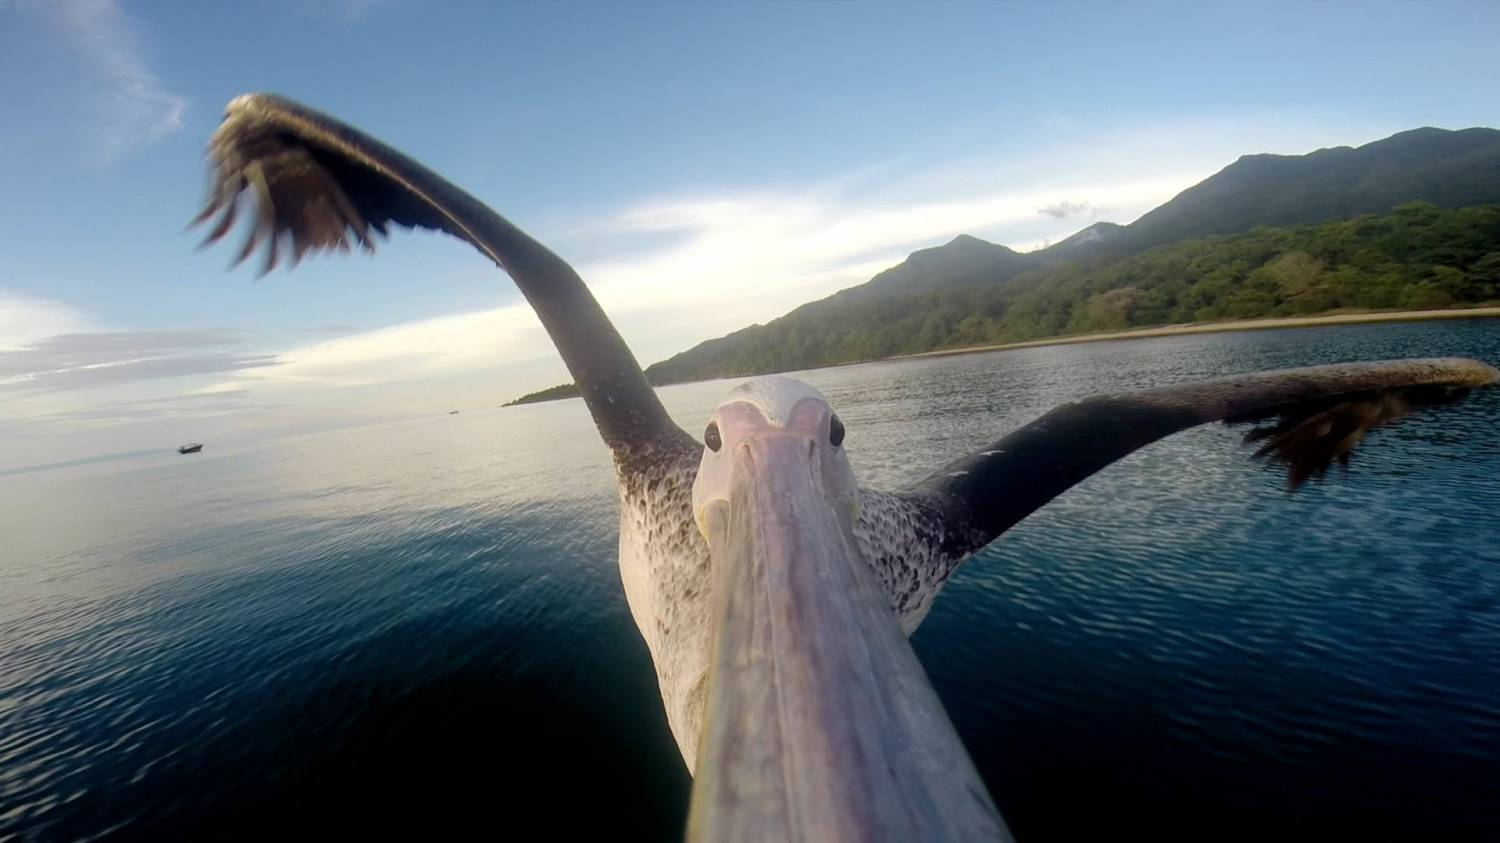 Музыка и видеоролик из рекламы GoPro - Pelican Learns To Fly